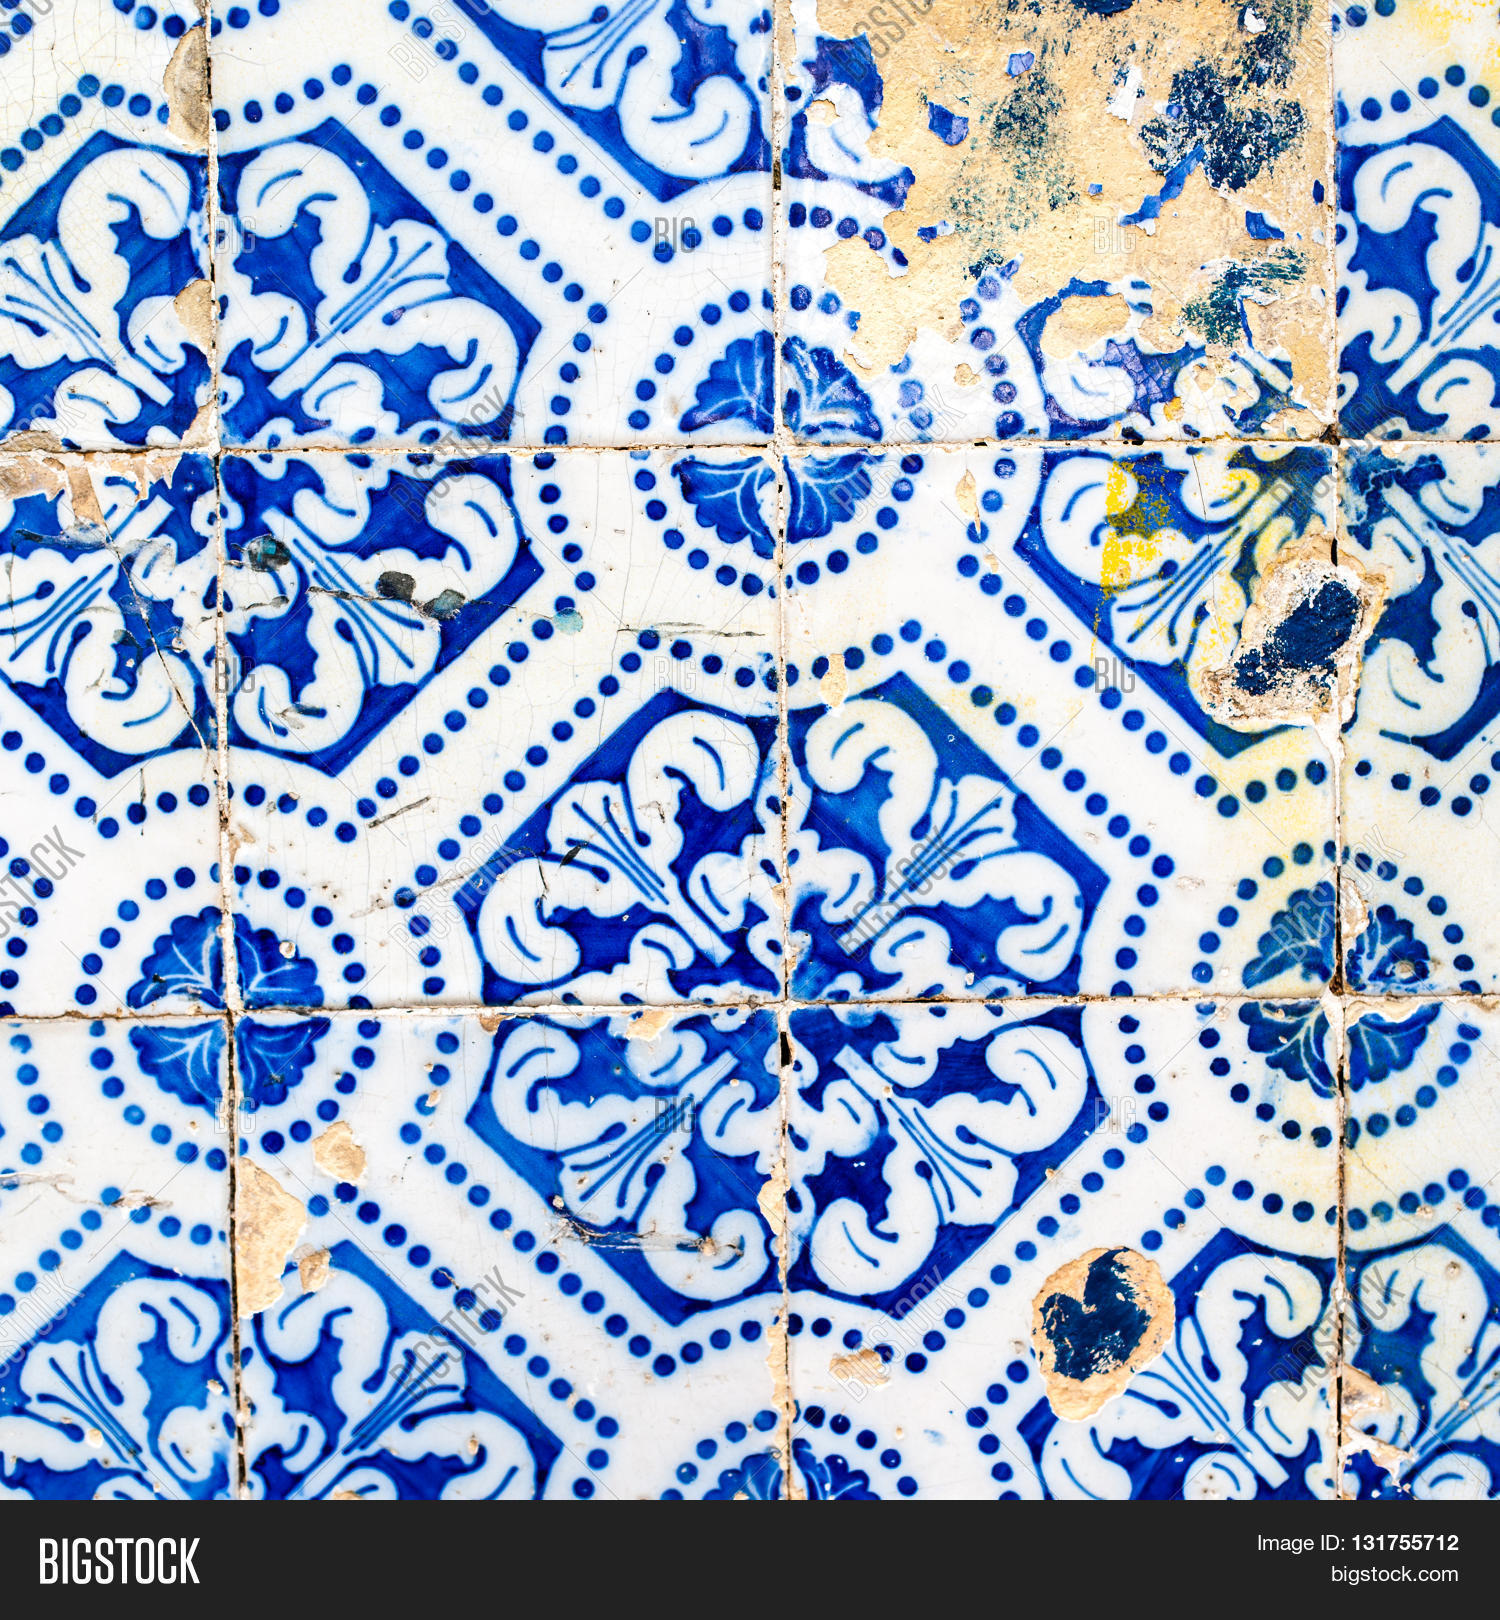 Traditional ornate portuguese image photo bigstock traditional ornate portuguese decorative tiles azulejos indigo blue tiles floor ornament collection dailygadgetfo Images